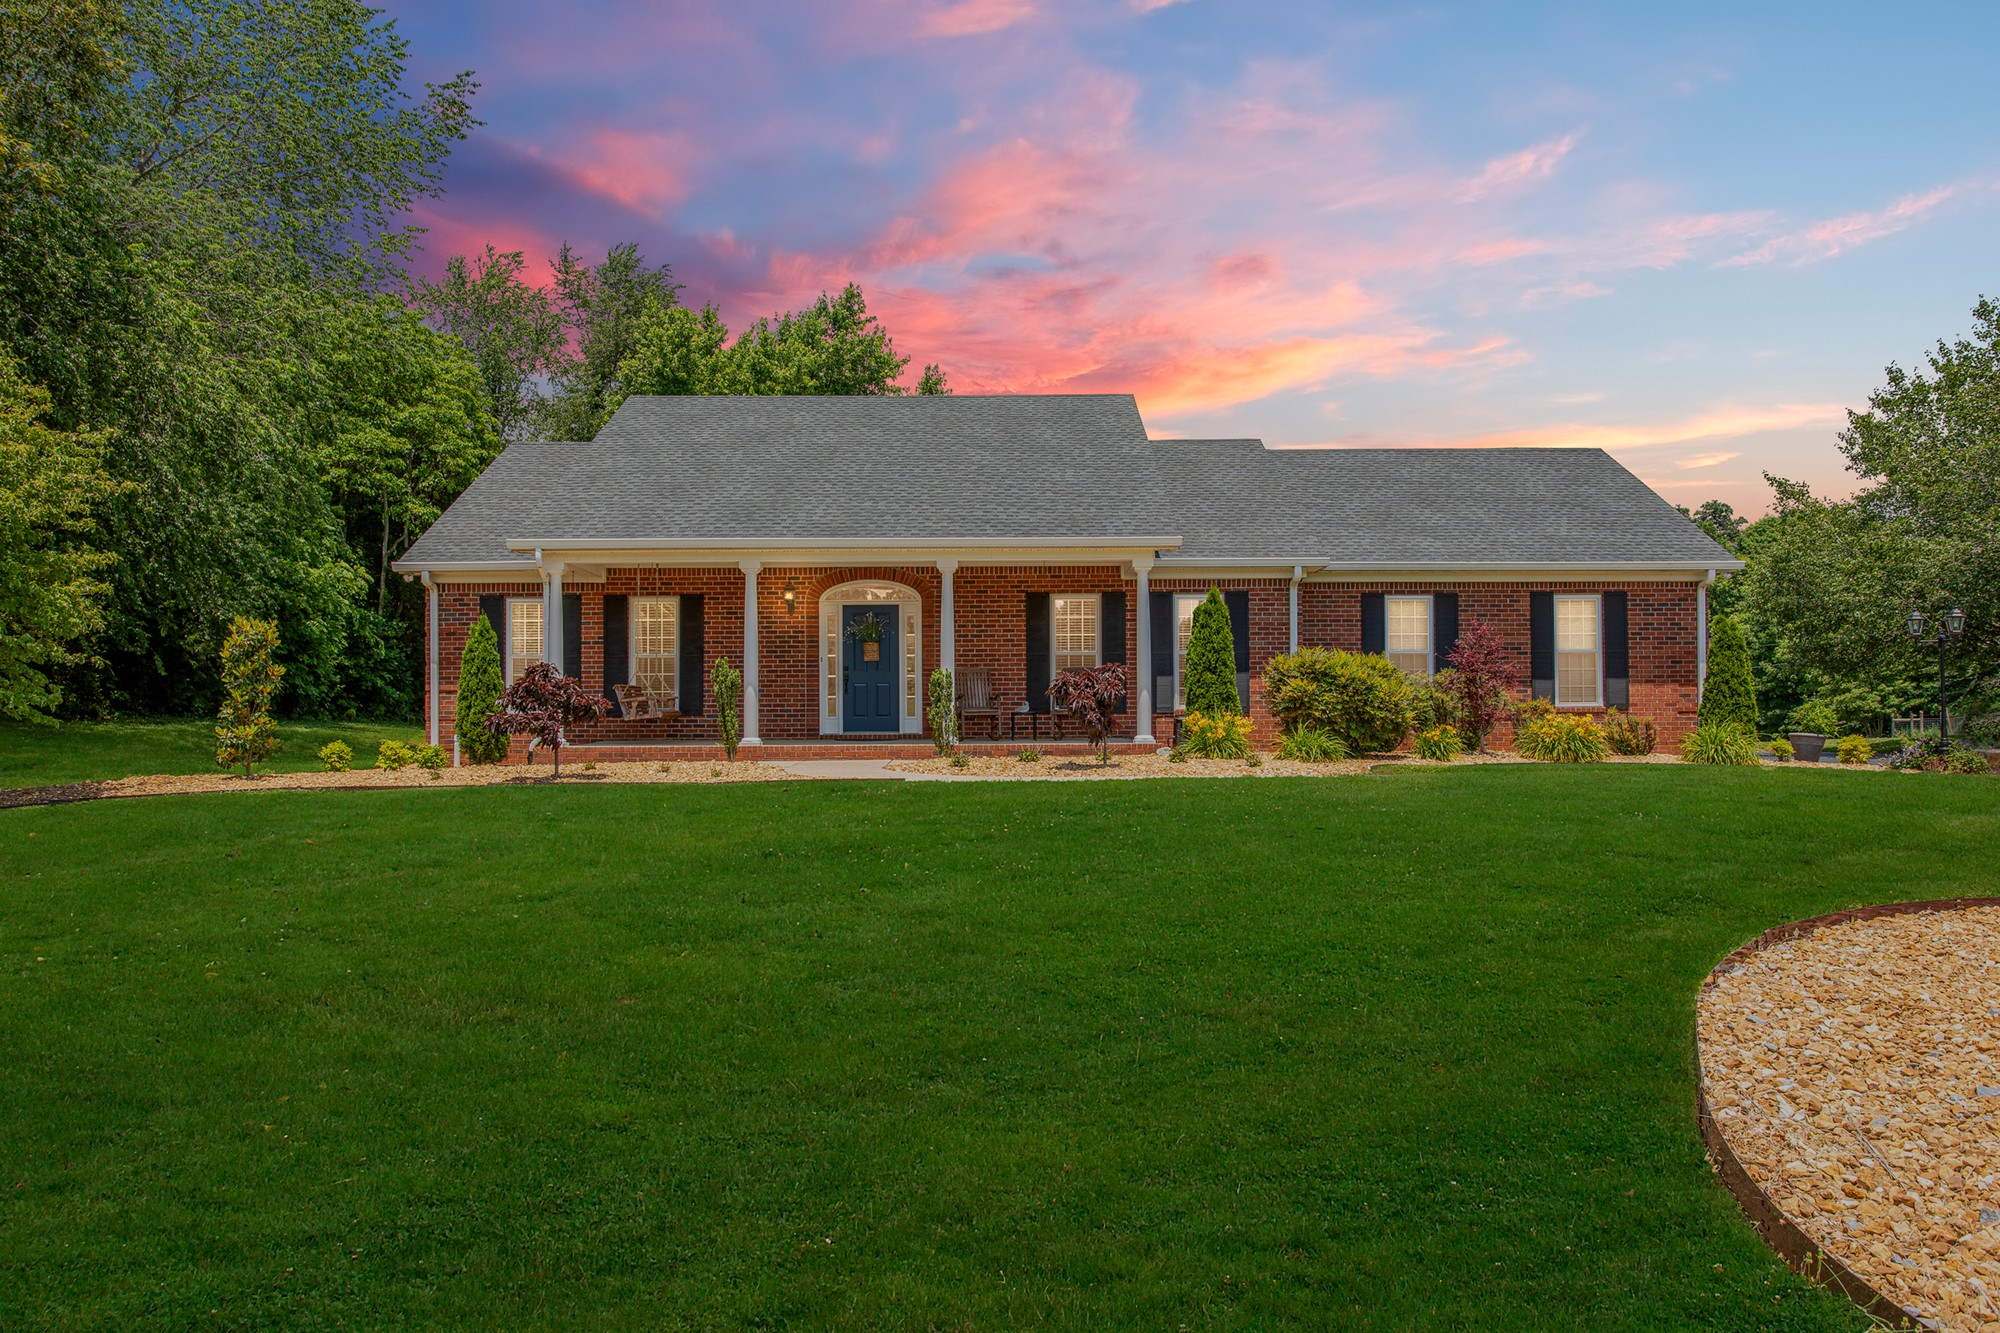 182 W Harper Rd Property Photo - Portland, TN real estate listing